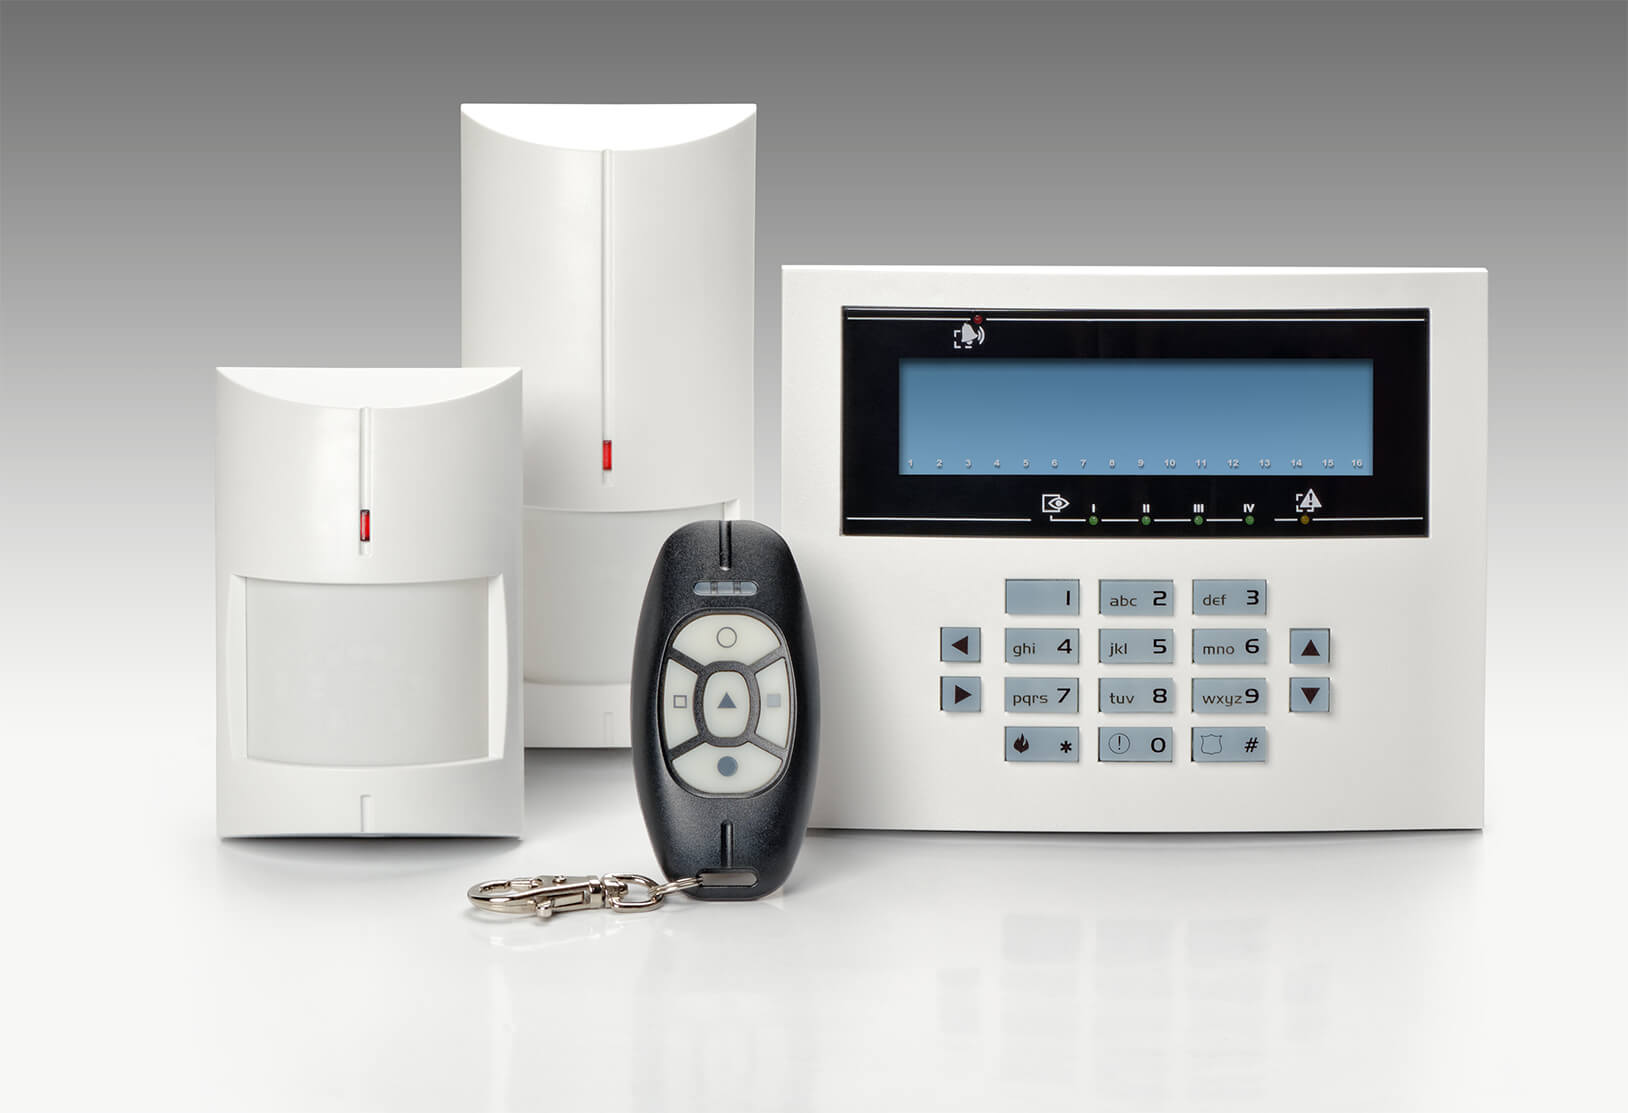 home NACOSS Approved {alarms} In City of London - Local City of London security company.Call 02078872244 - Dedicated to Safety & Security.Trusted by 1000's in City of London